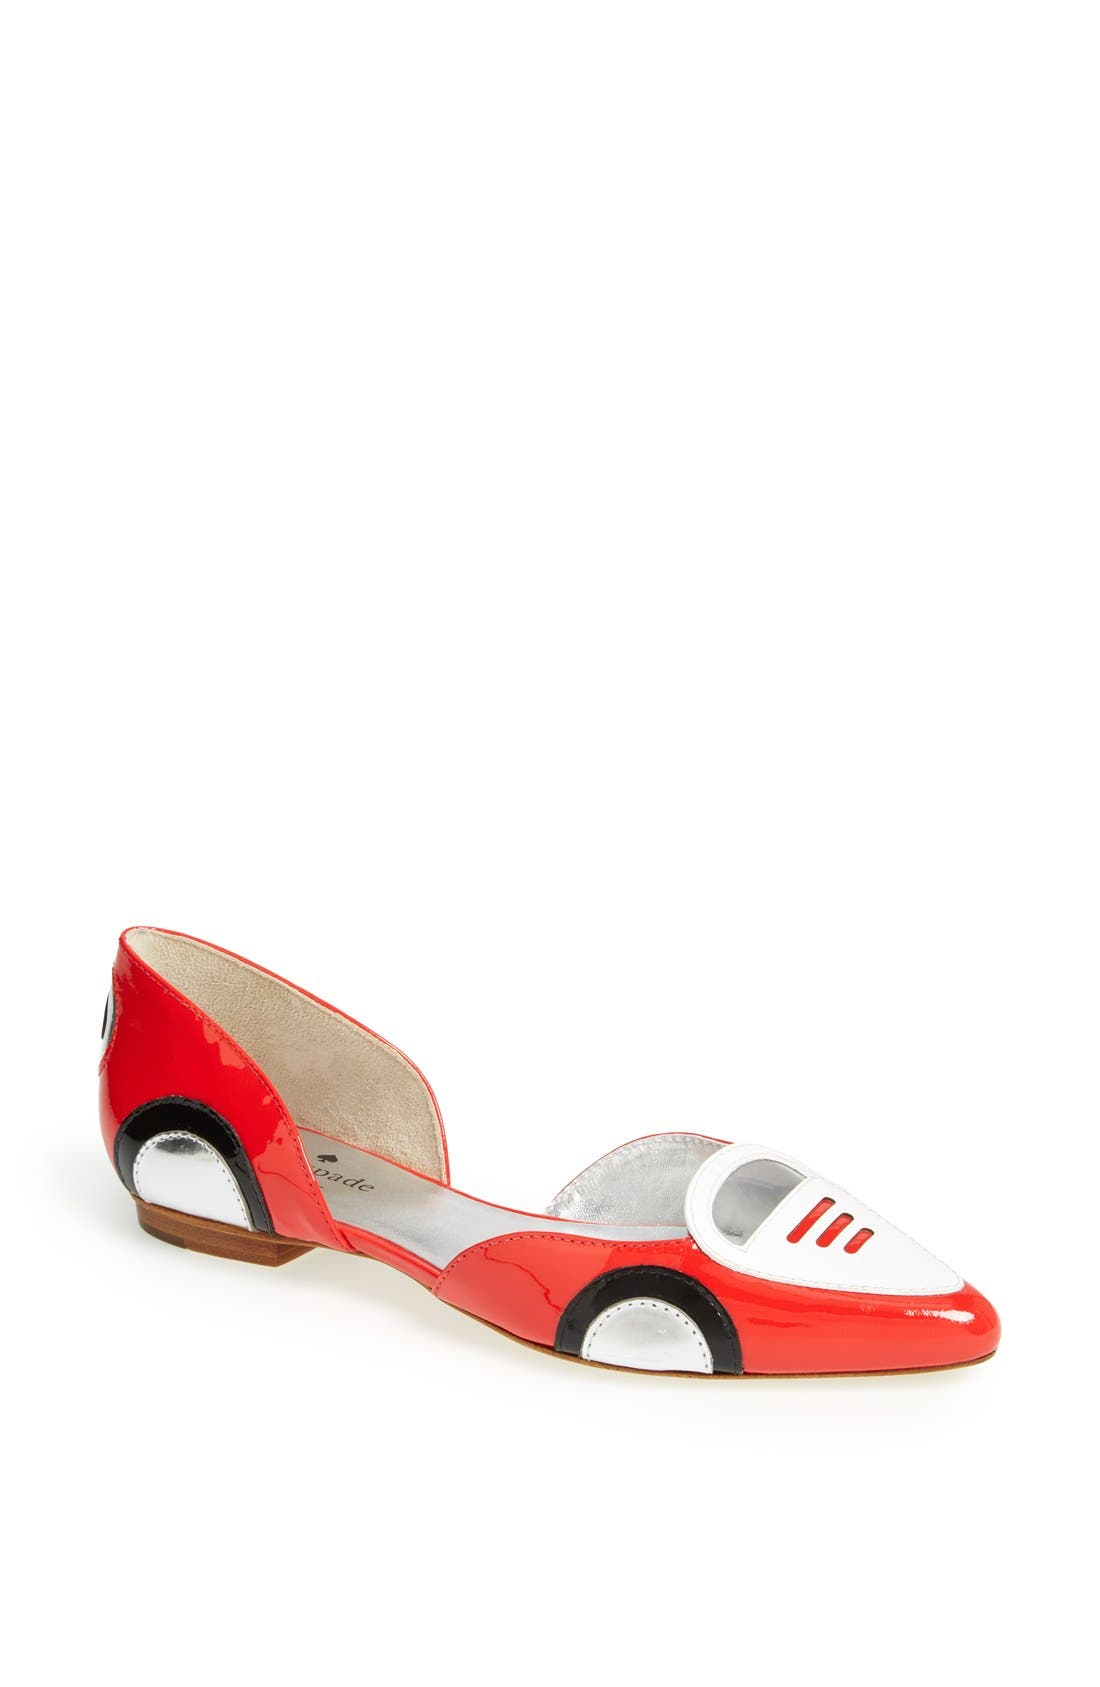 Alternate Image 1 Selected - kate spade new york 'racer' flat